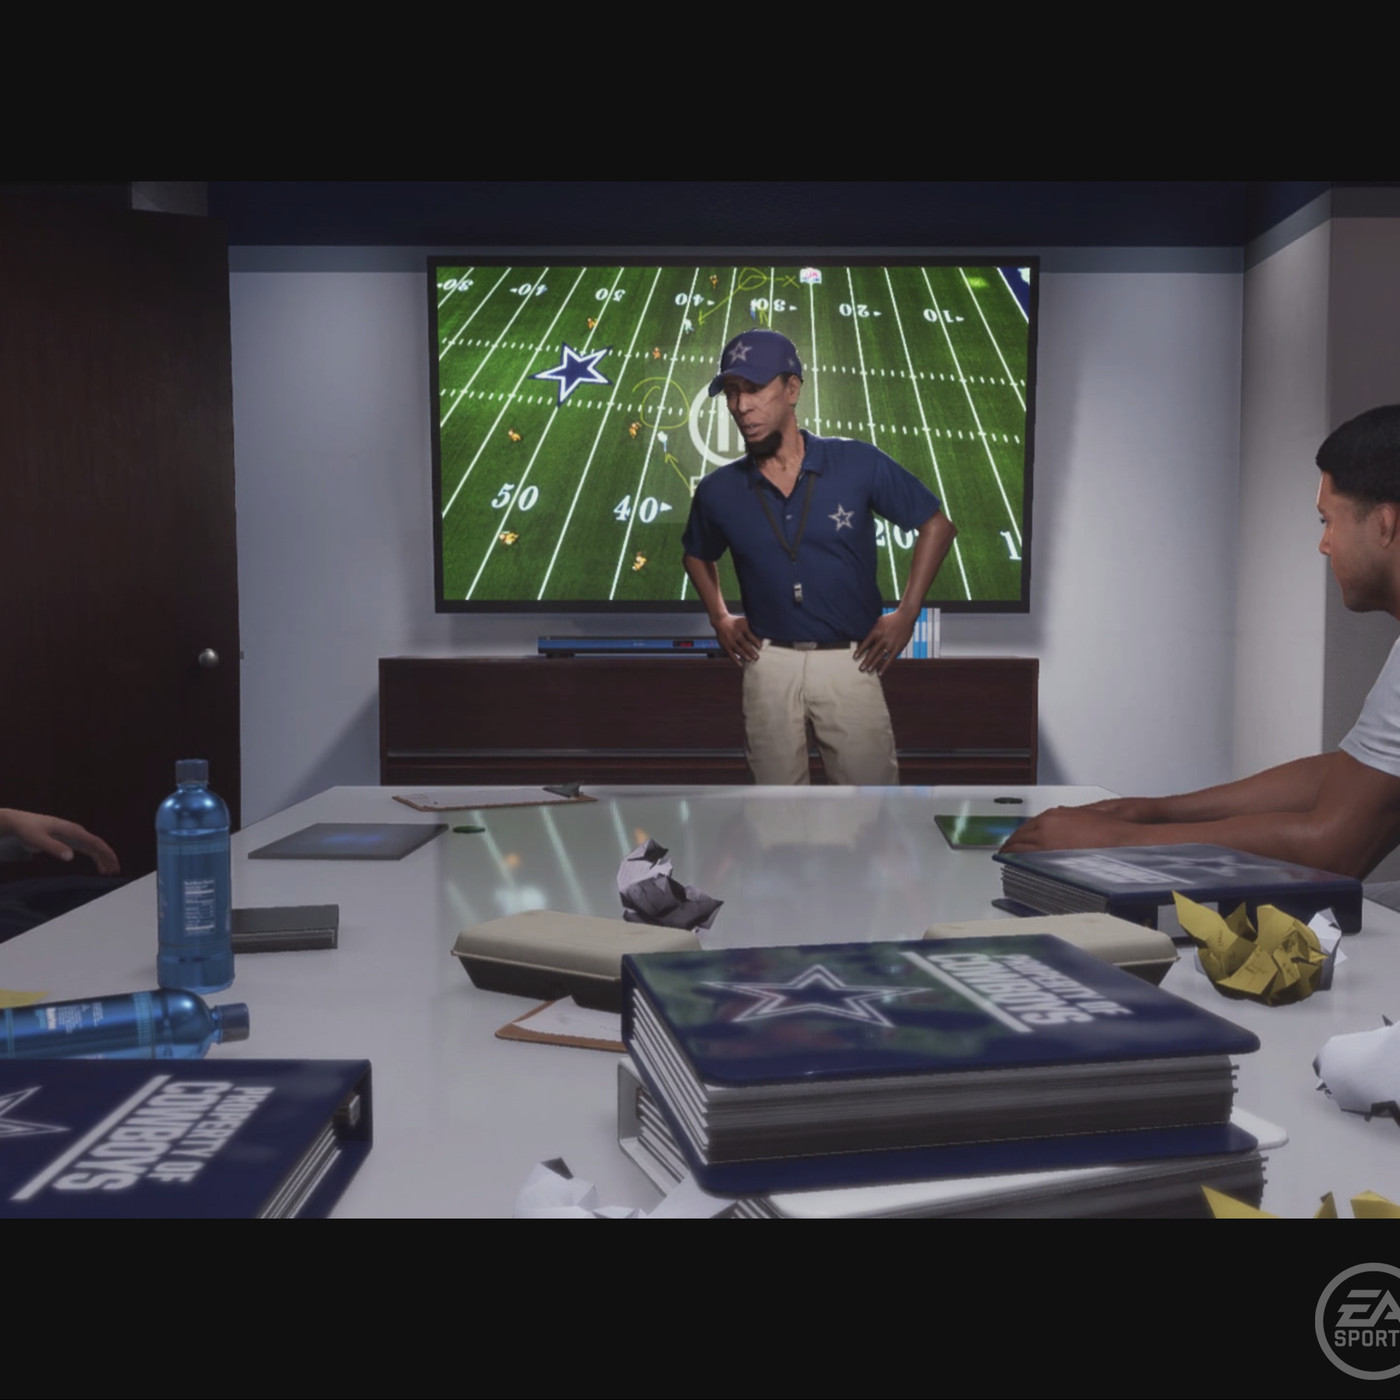 Madden NFL's Longshot comes back with a more intense sequel